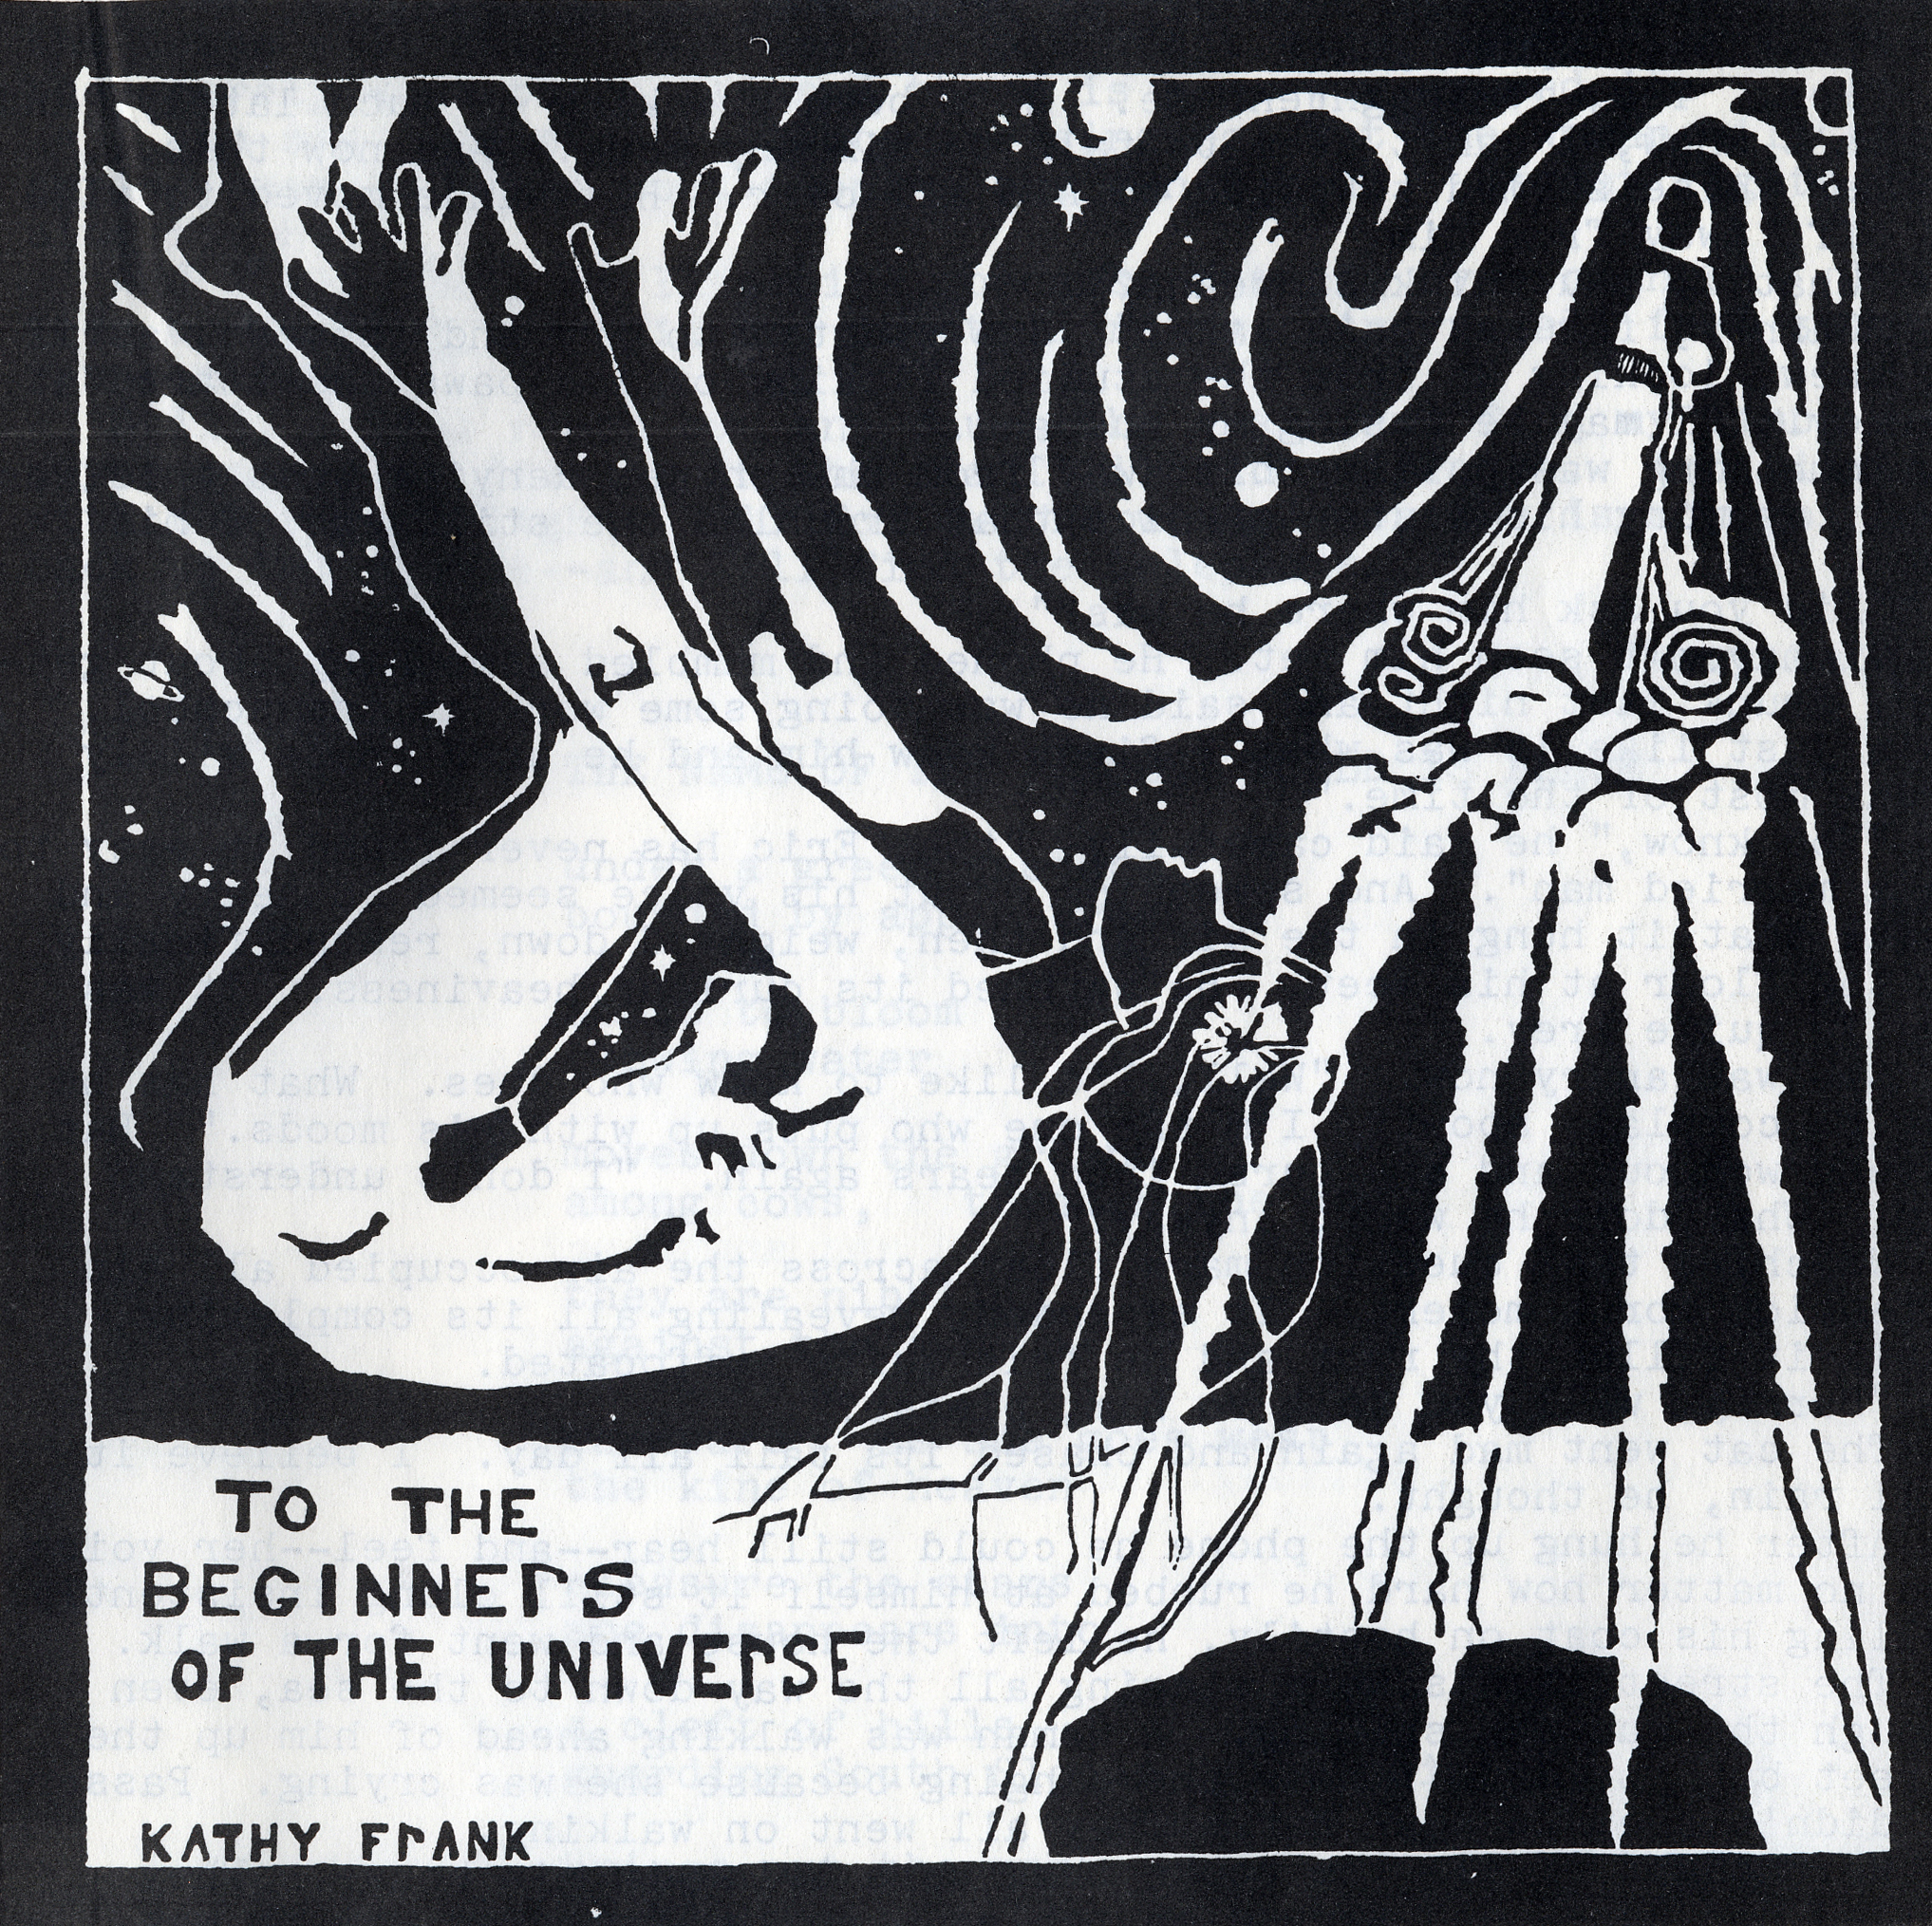 black and white graphic with swimmer on left and sea creature on right; signed by Kathy Frank and titled To the Beginners of the Universe